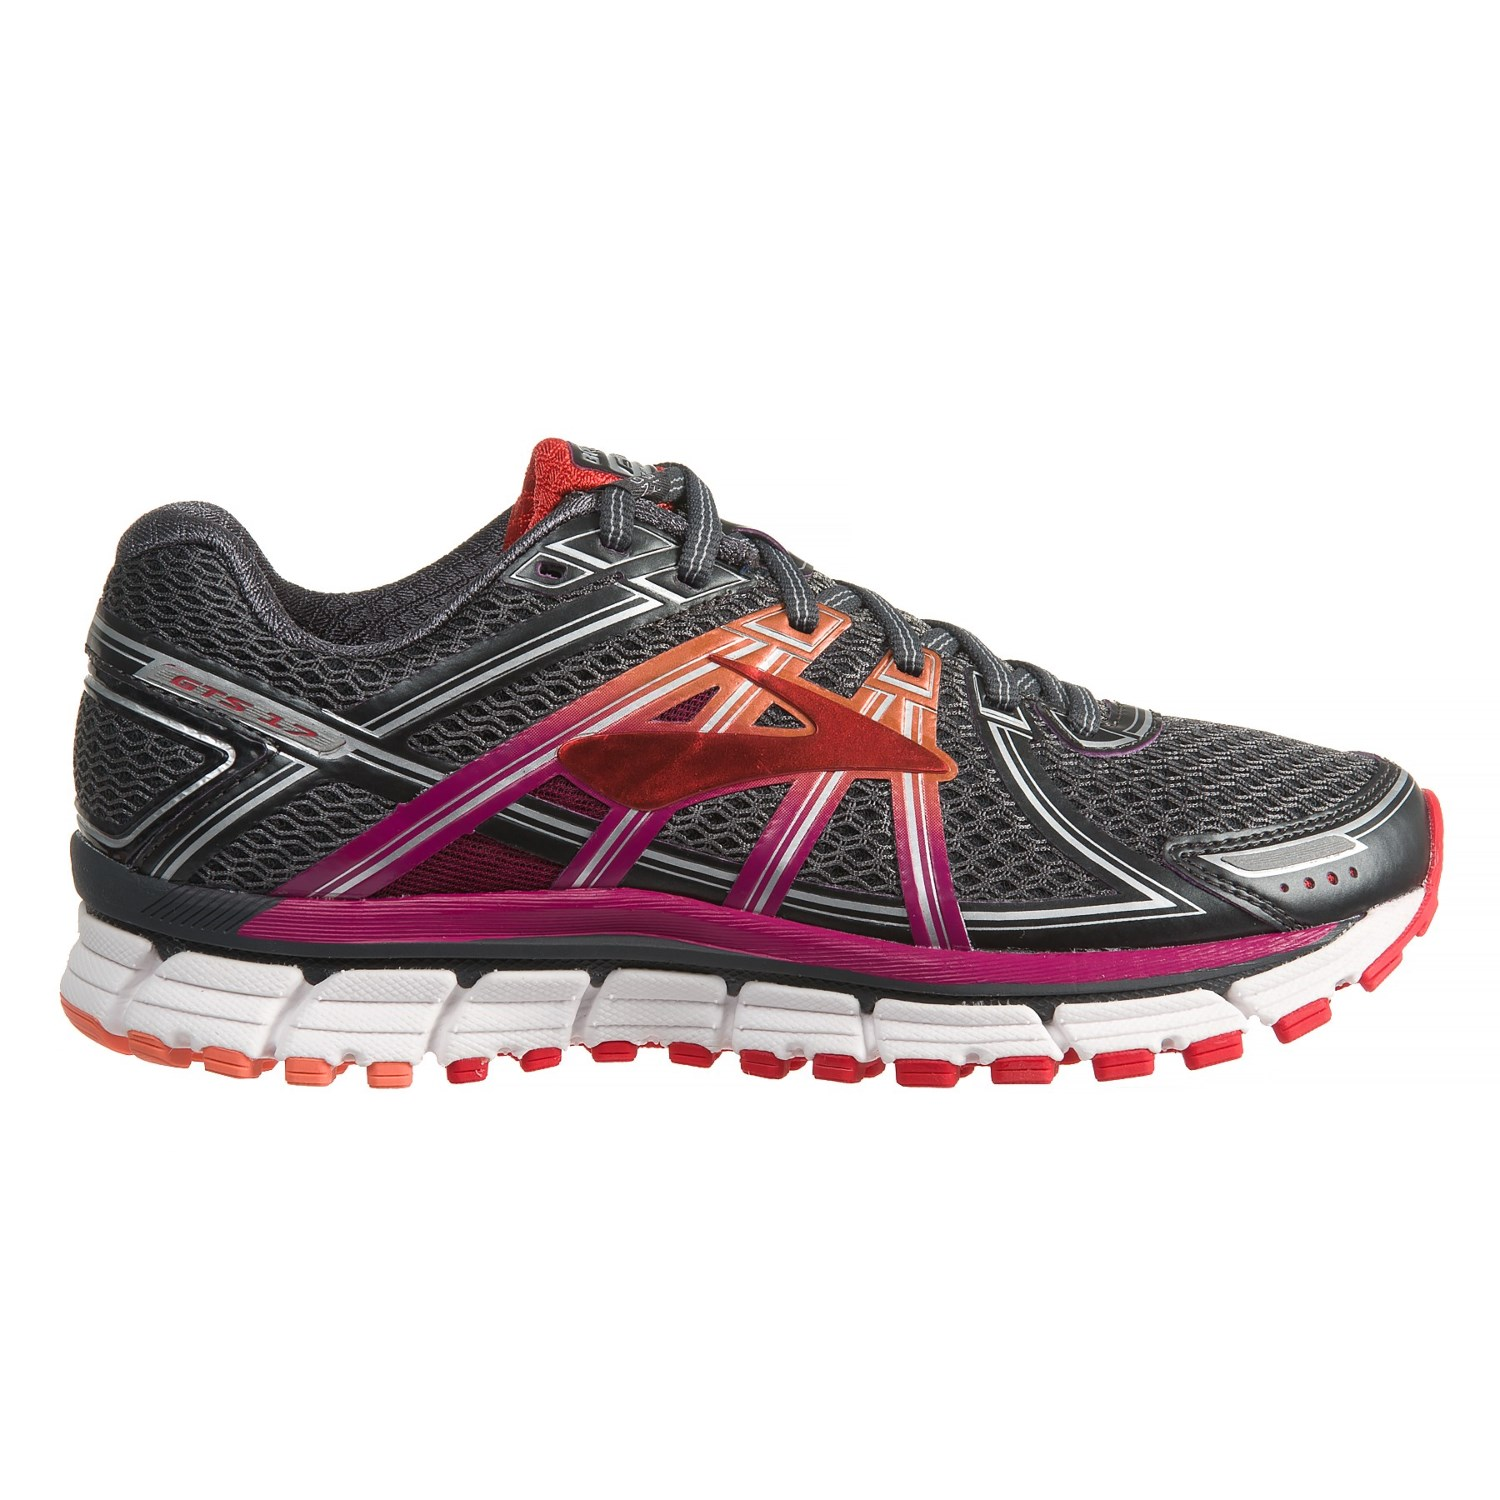 3eac44f19c6 Brooks Adrenaline GTS 17 Running Shoes (For Women)